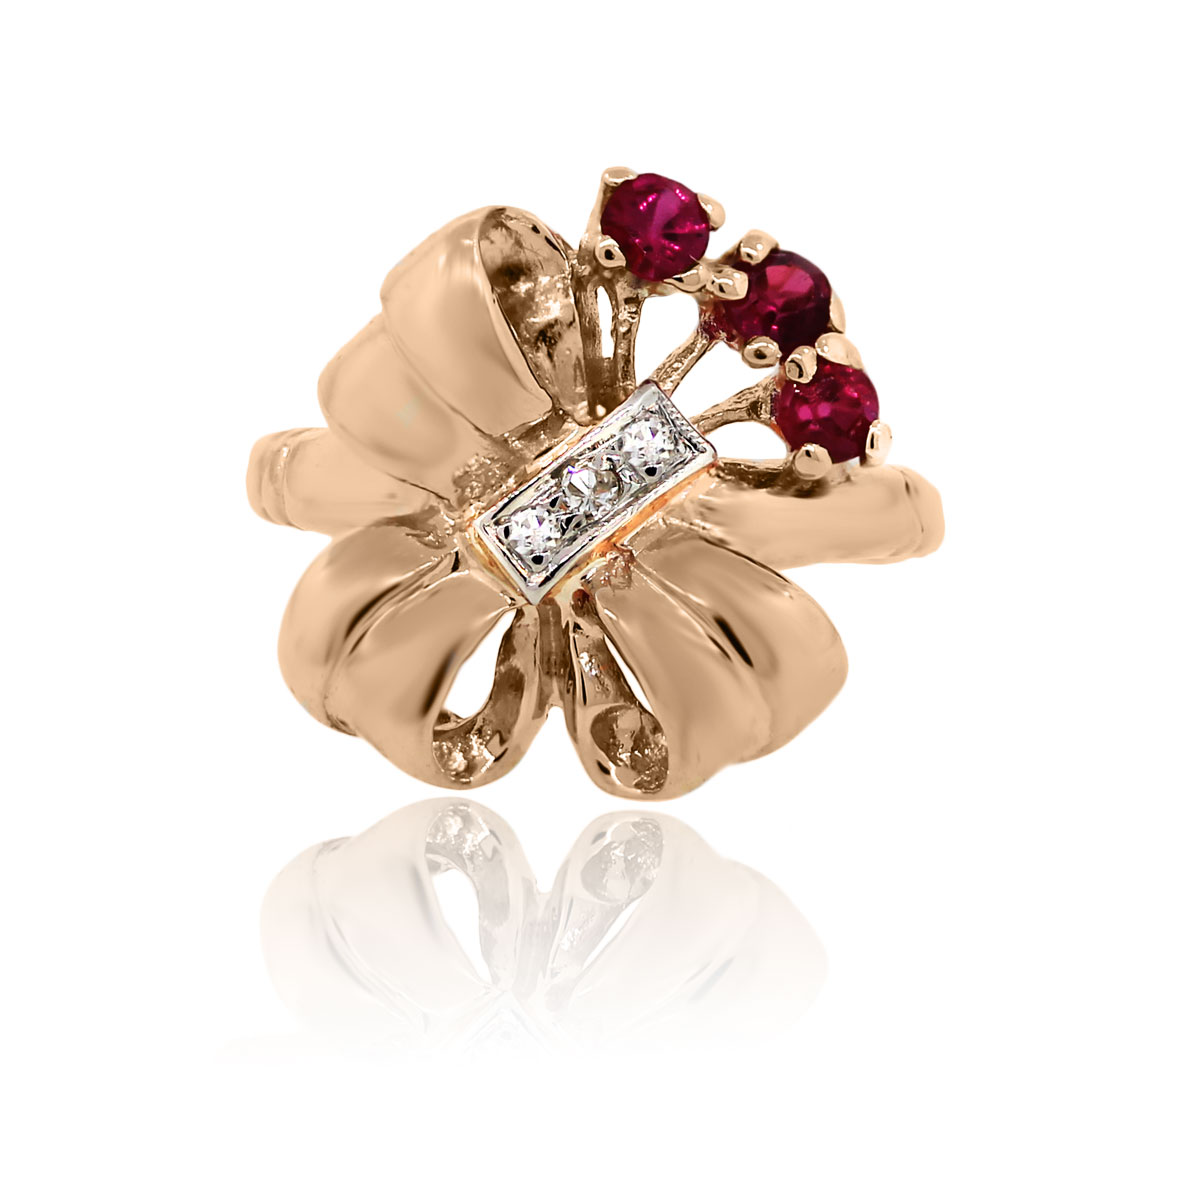 You are viewing this 14k Rose Gold Diamond Ruby Vintage Cocktail Ring!